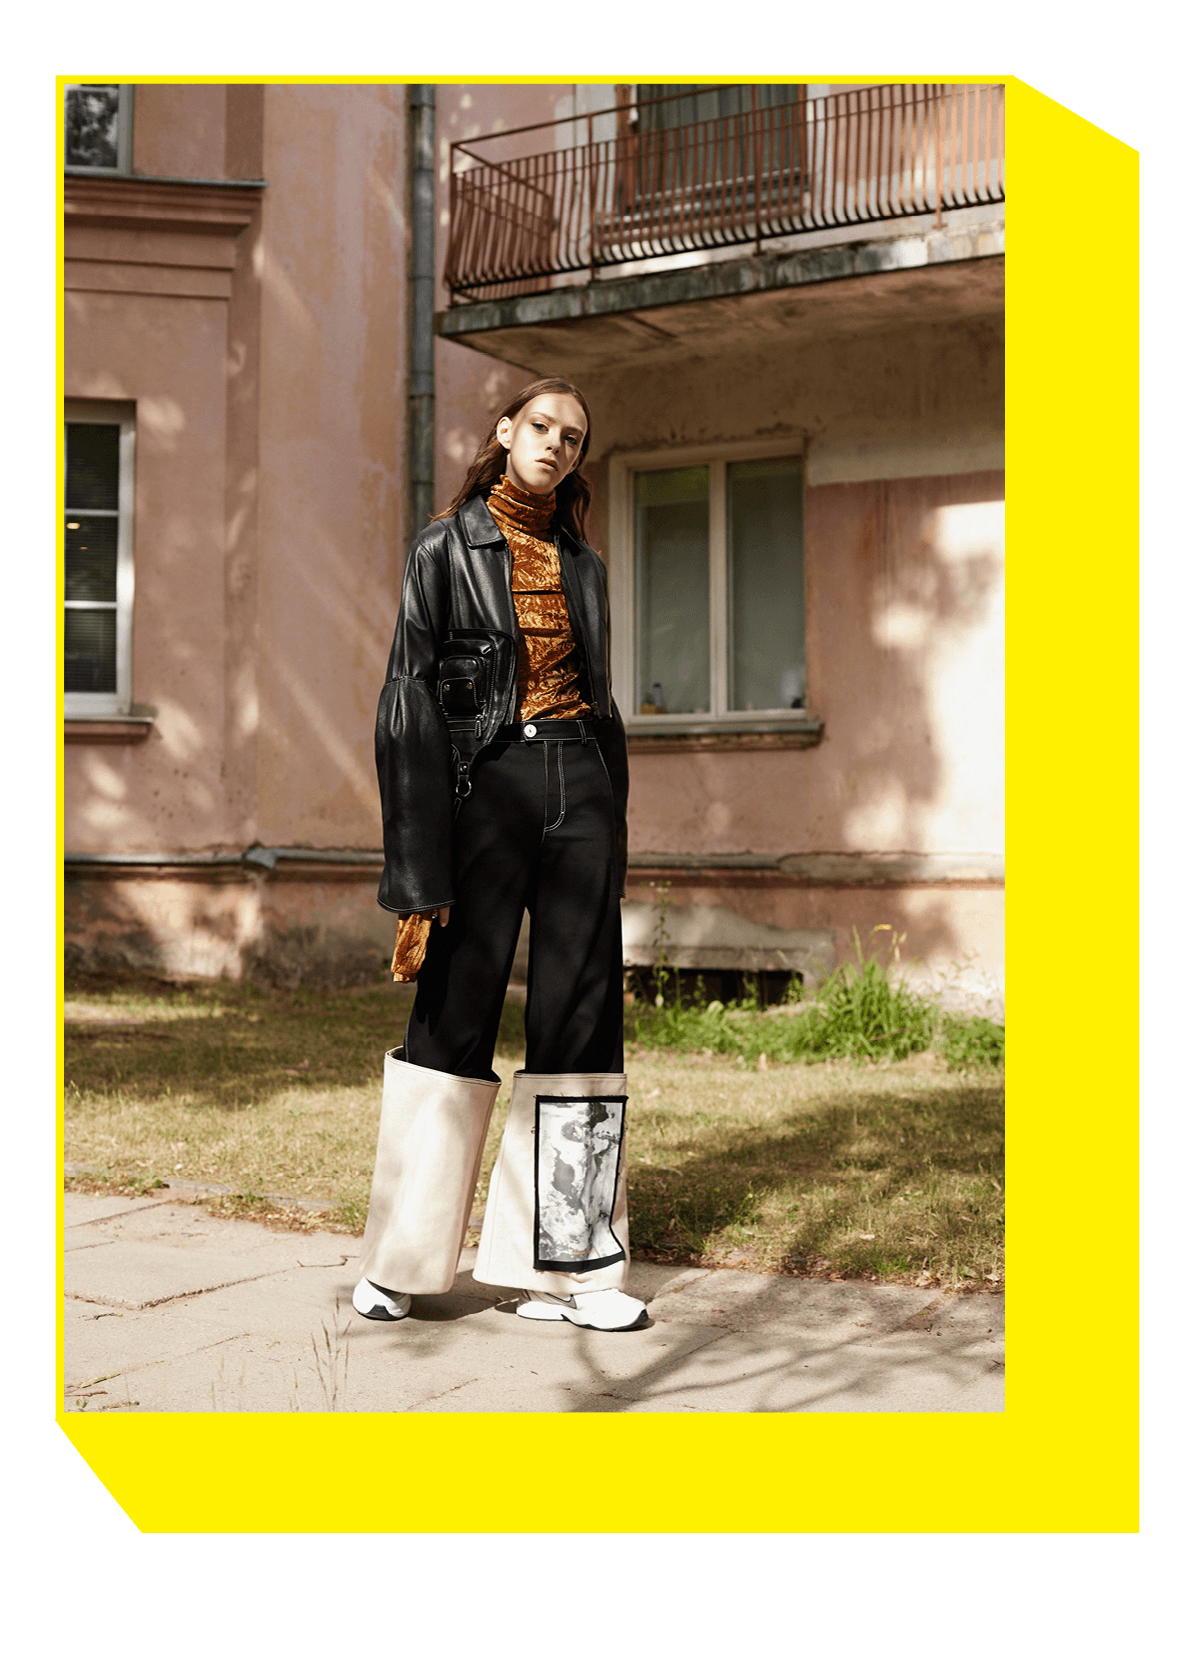 jacket, trousers URTE KATILIUTE; blouse D.EFECT; accessories GINGER TAIL; shoes belong to the stylist